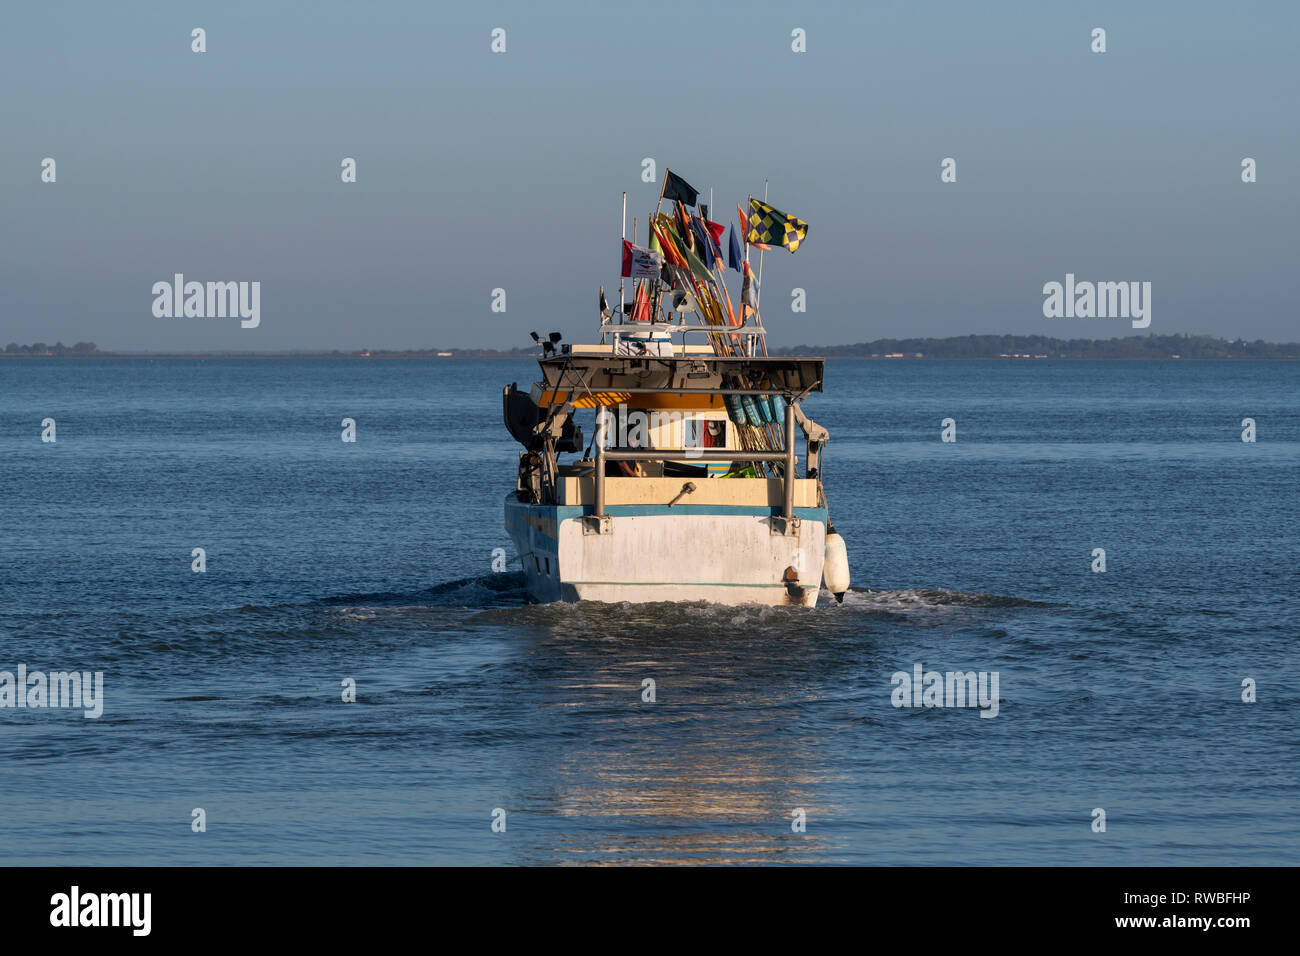 France, Oléron, 2018.   Small fishing boat  leaving the port of Château-d'Oléron - Stock Image